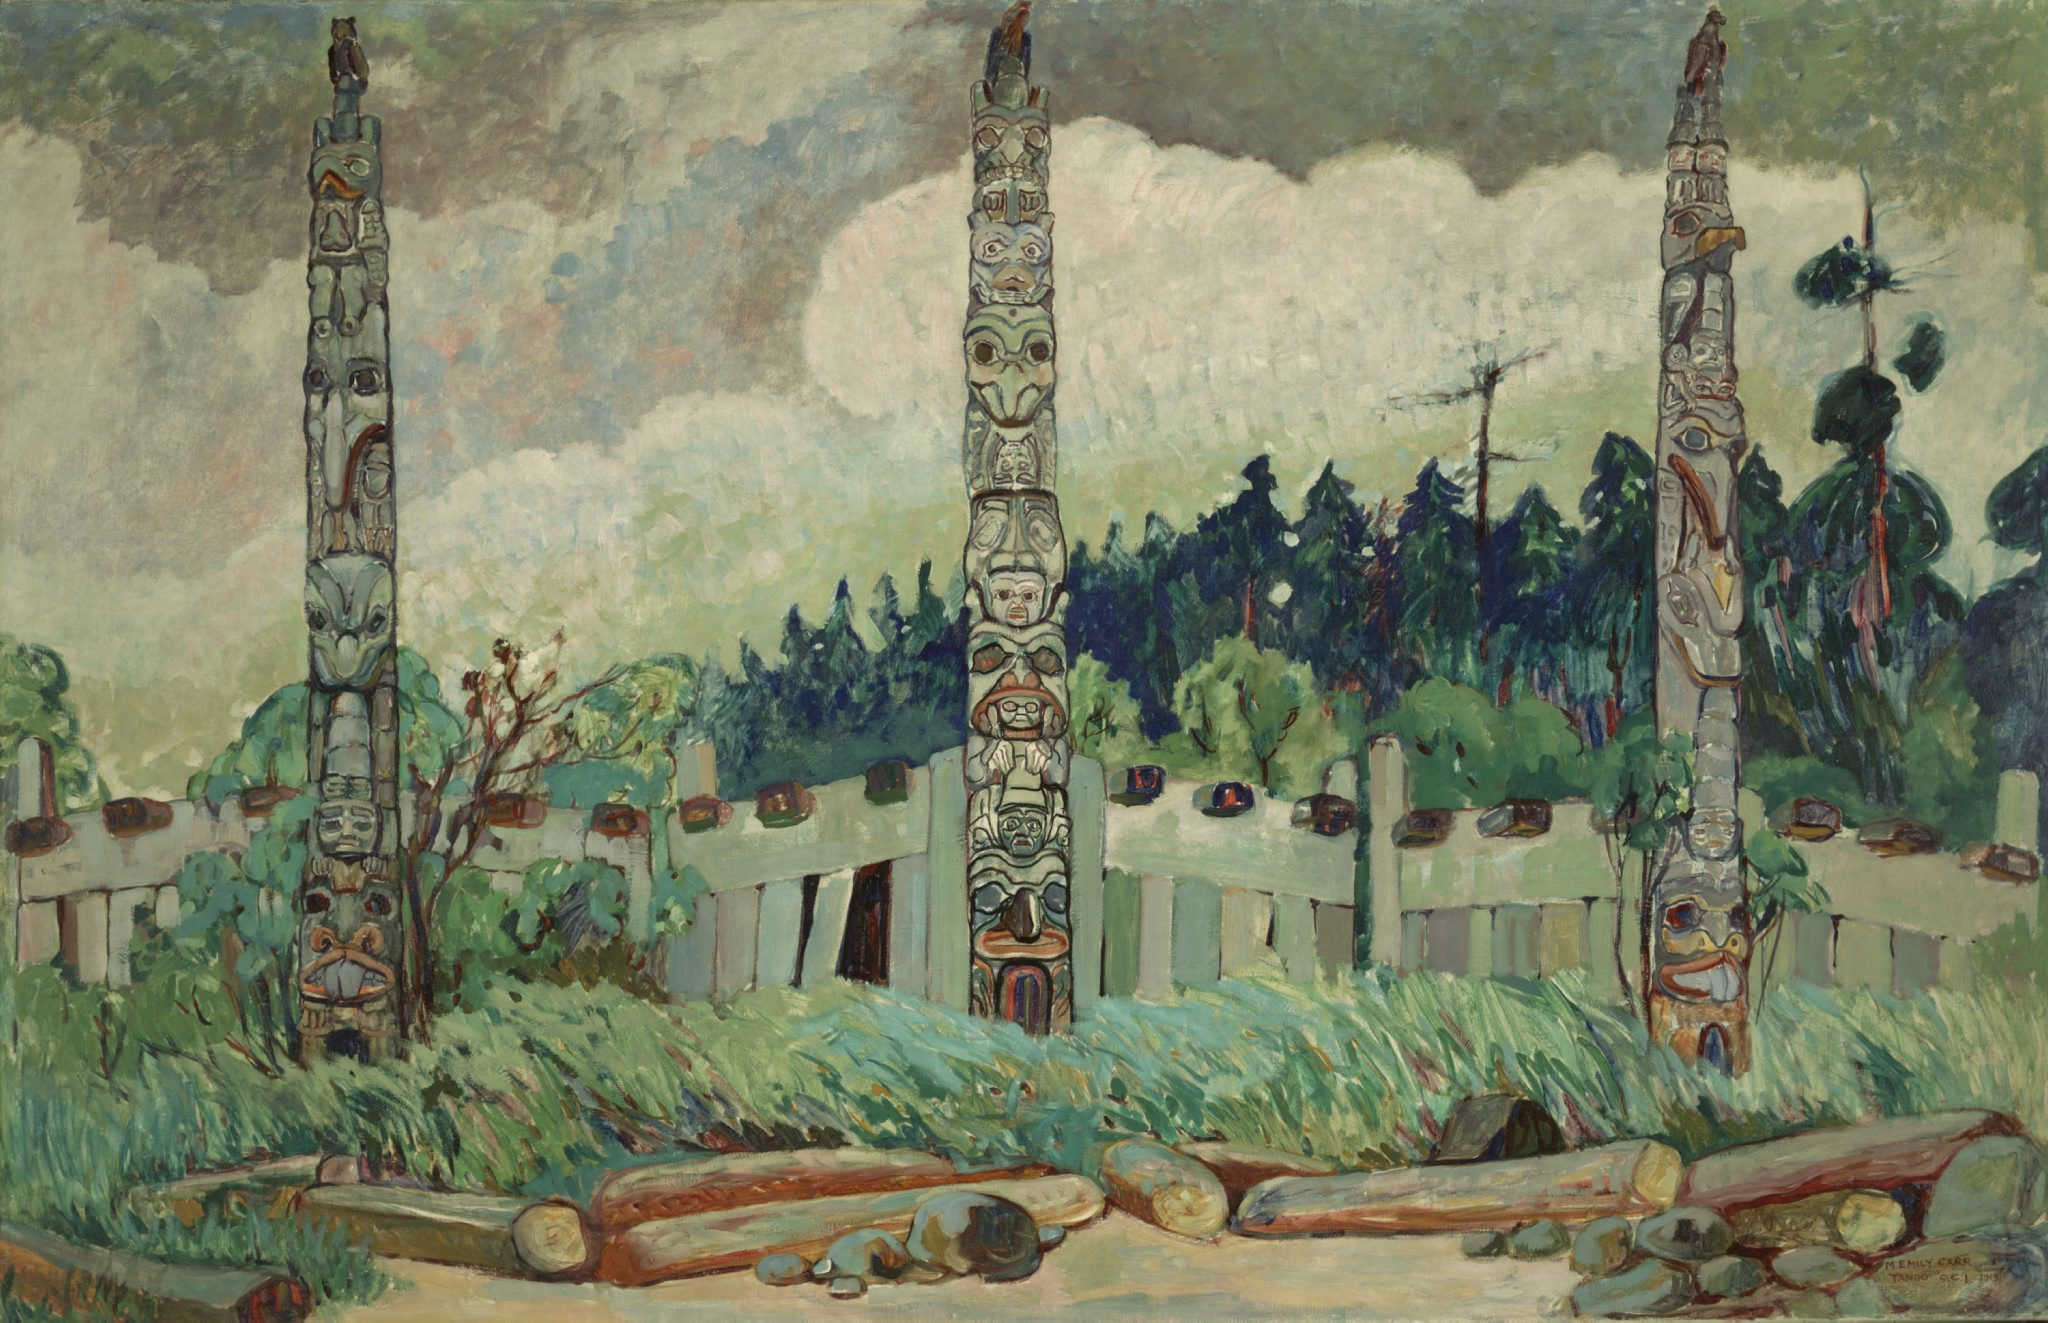 Emily Carr: From the Forest to the Sea